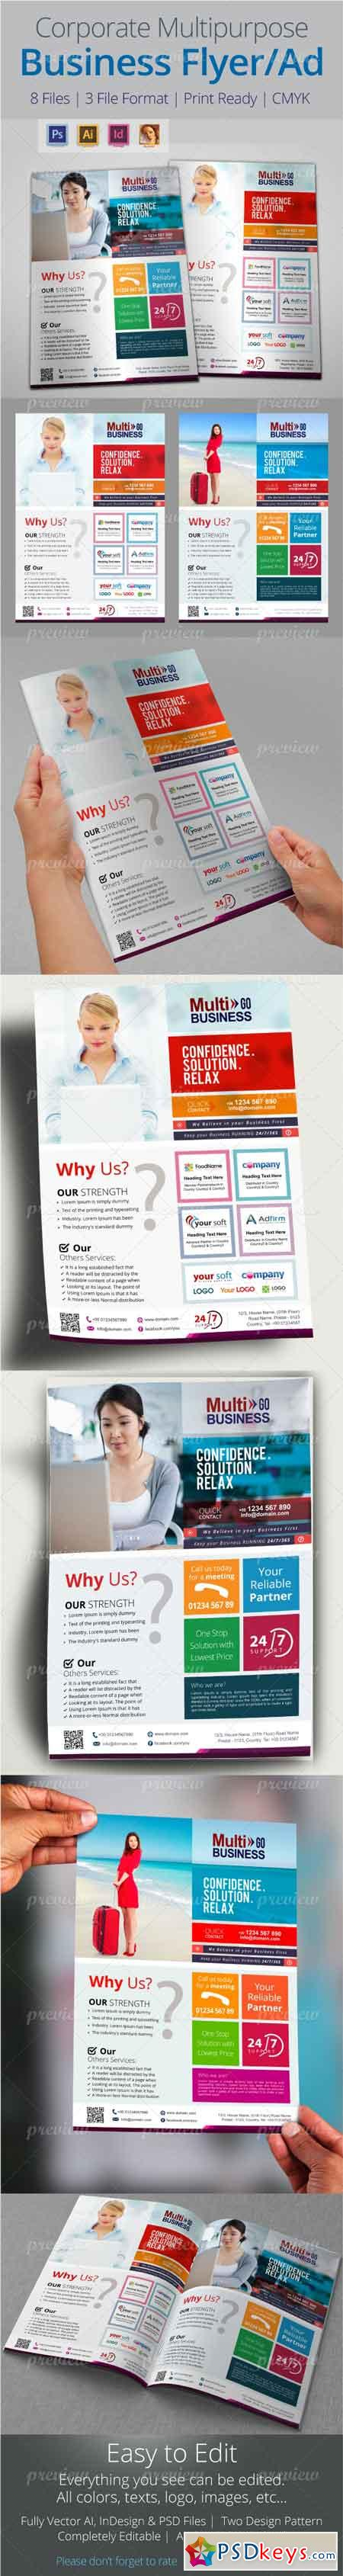 corporate multipurpose business flyer ad templates 4794 corporate multipurpose business flyer ad templates 4794